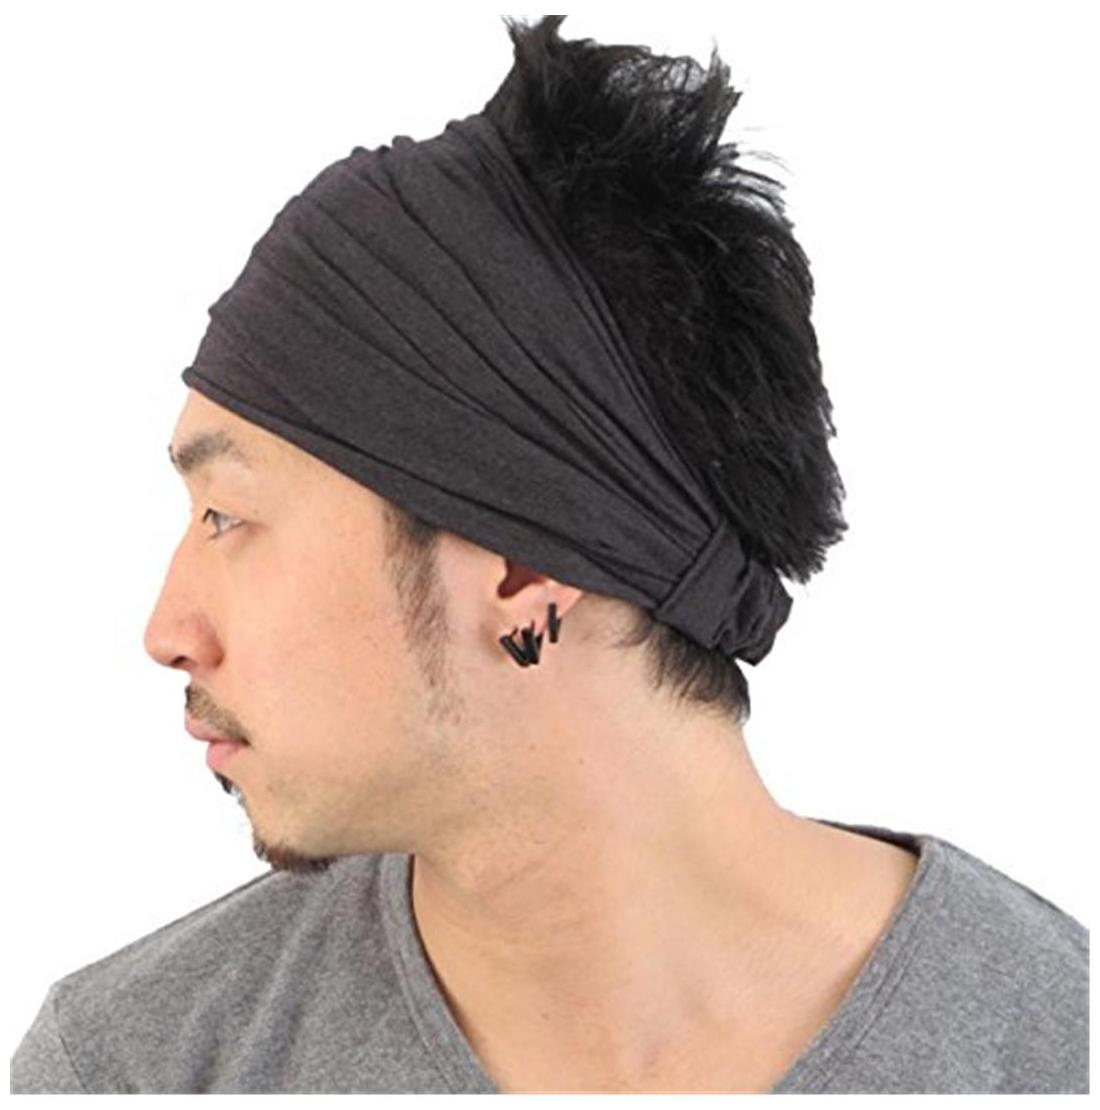 https   assetscdn1.paytm.com images catalog product . Casualbox mens Head  cover ... 7985782b9f5